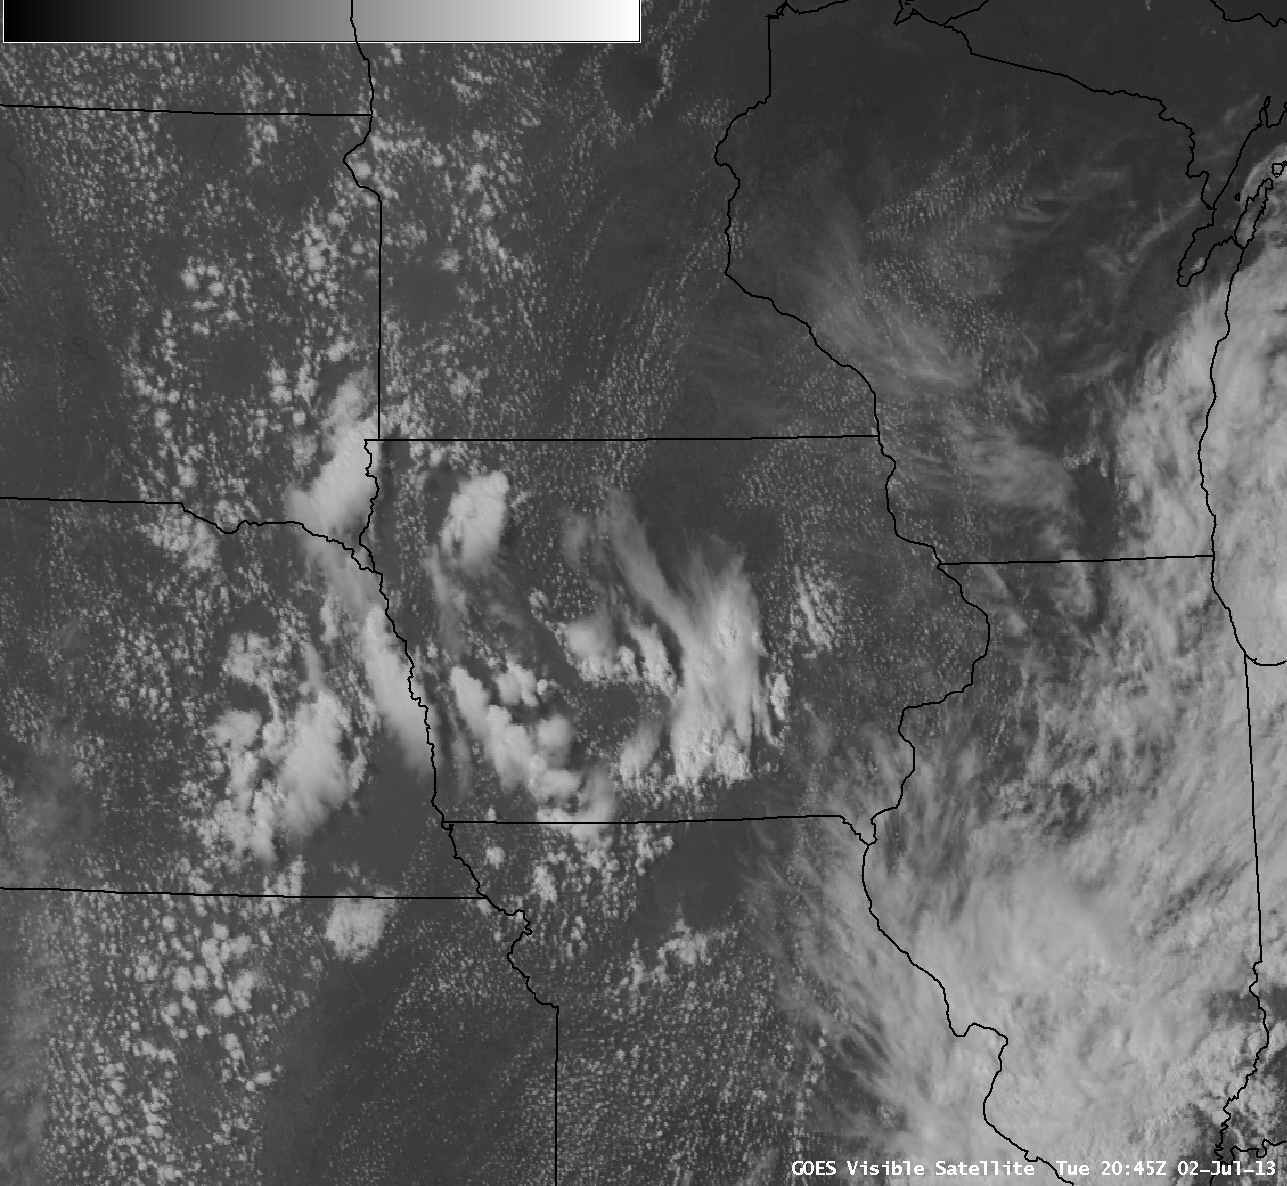 GOES-13 0.63 µm visible channel images (click image to play animation)